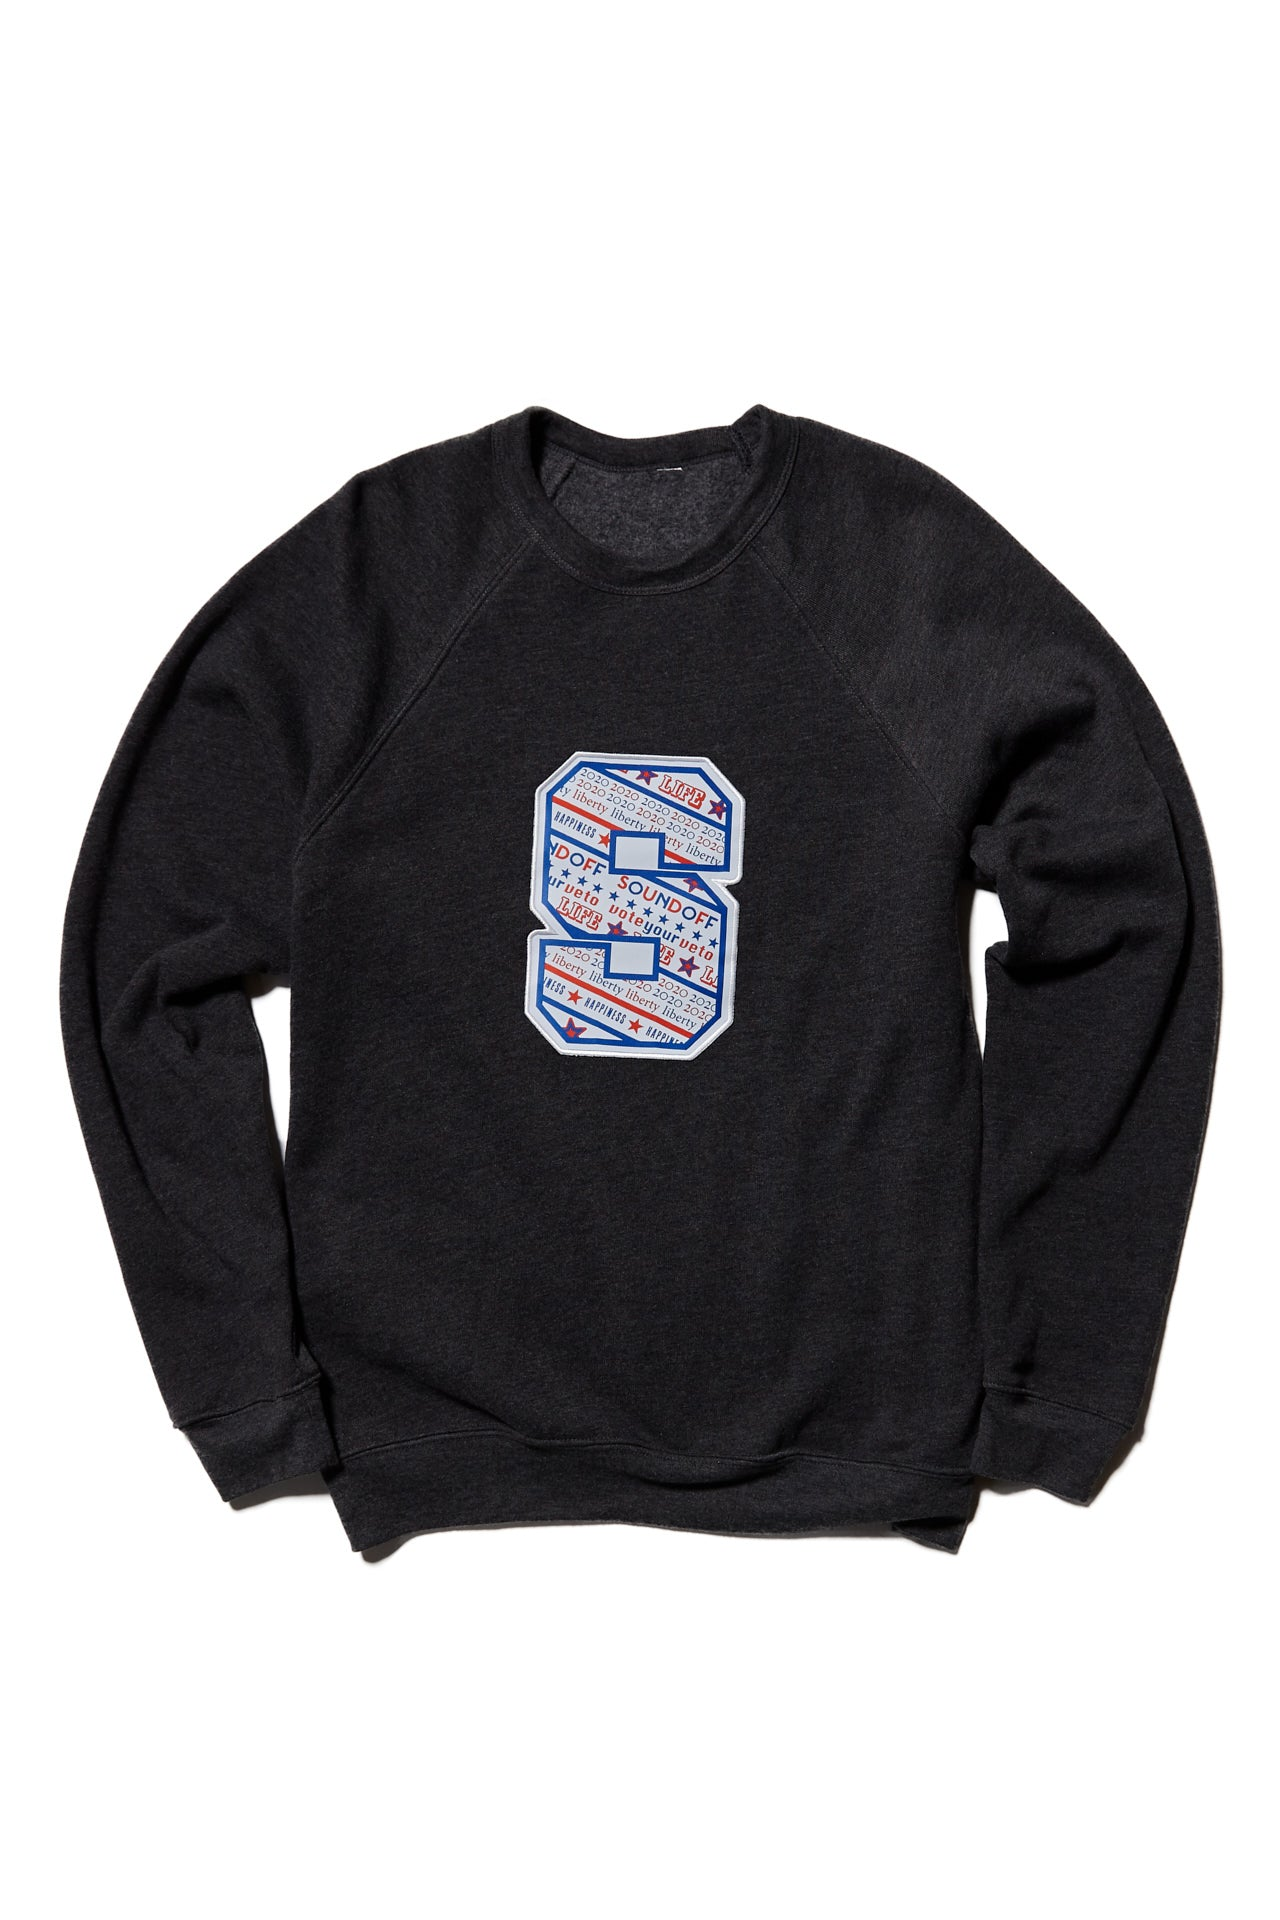 "SOUNDOFF ""S"" Sweatshirt; DARK GRAY HEATHER"